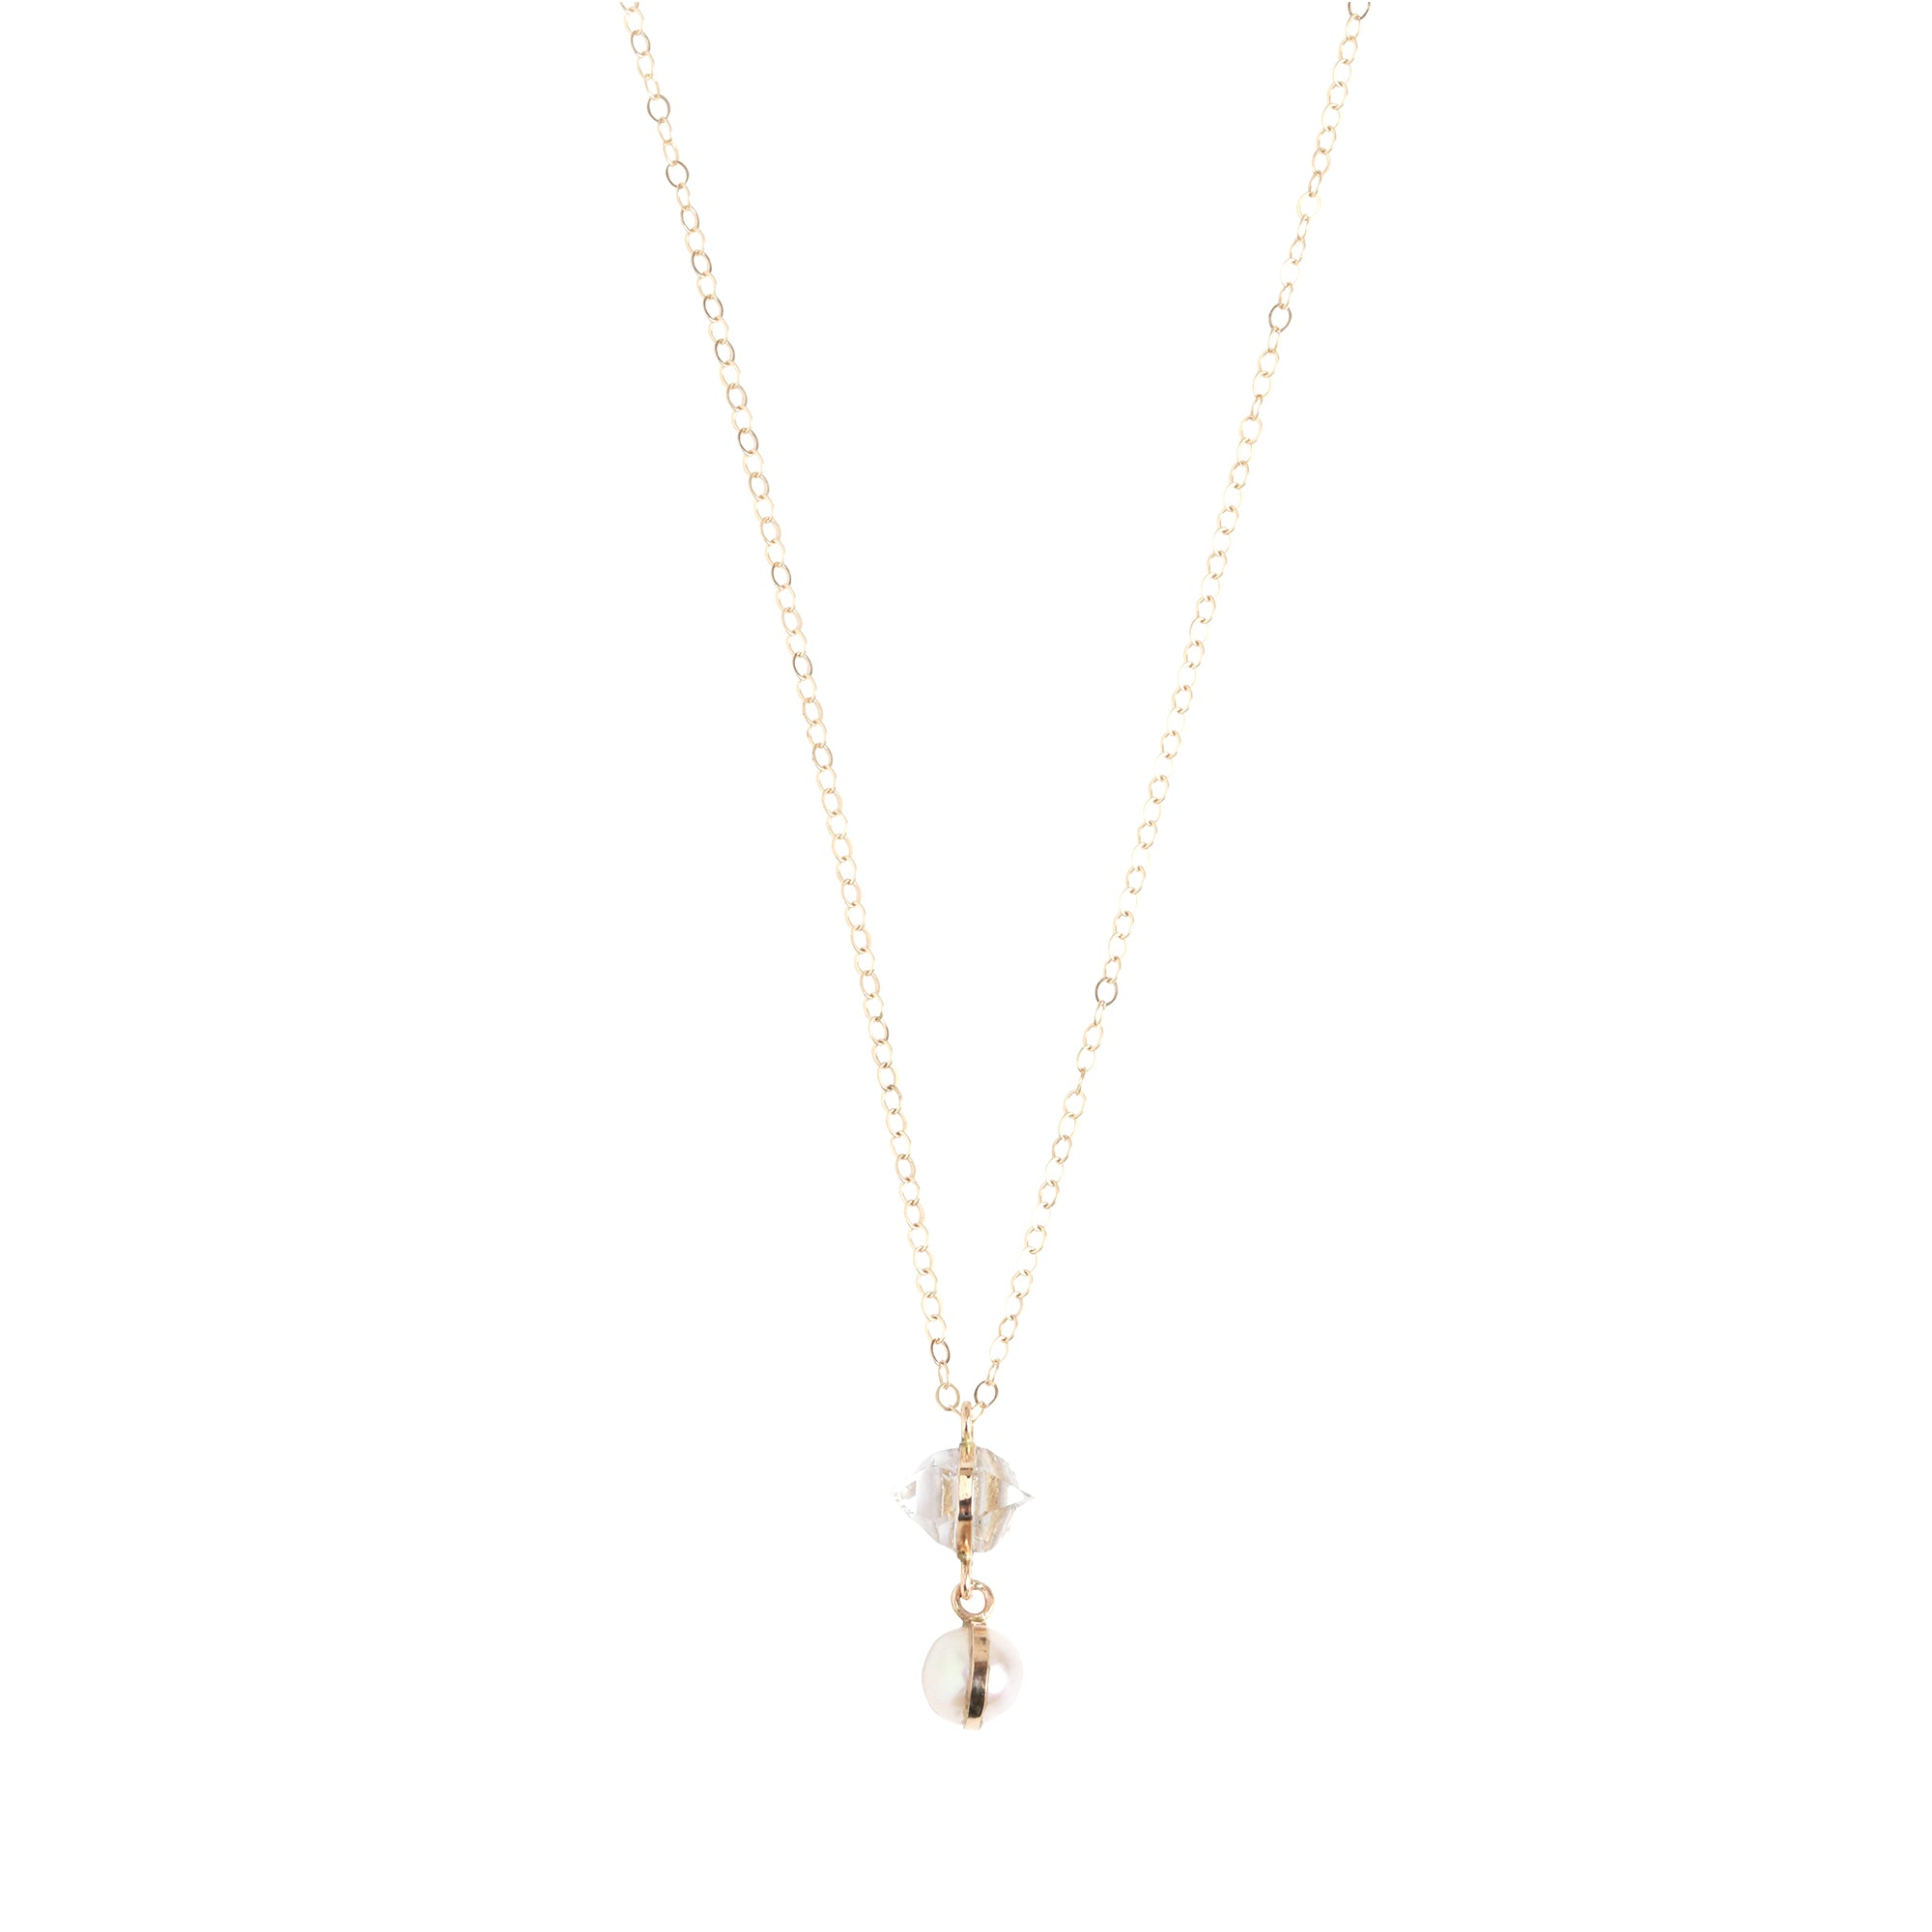 Melissa Joy Manning Drop Necklace - Herkimer & Pearl - Necklaces - Broken English Jewelry